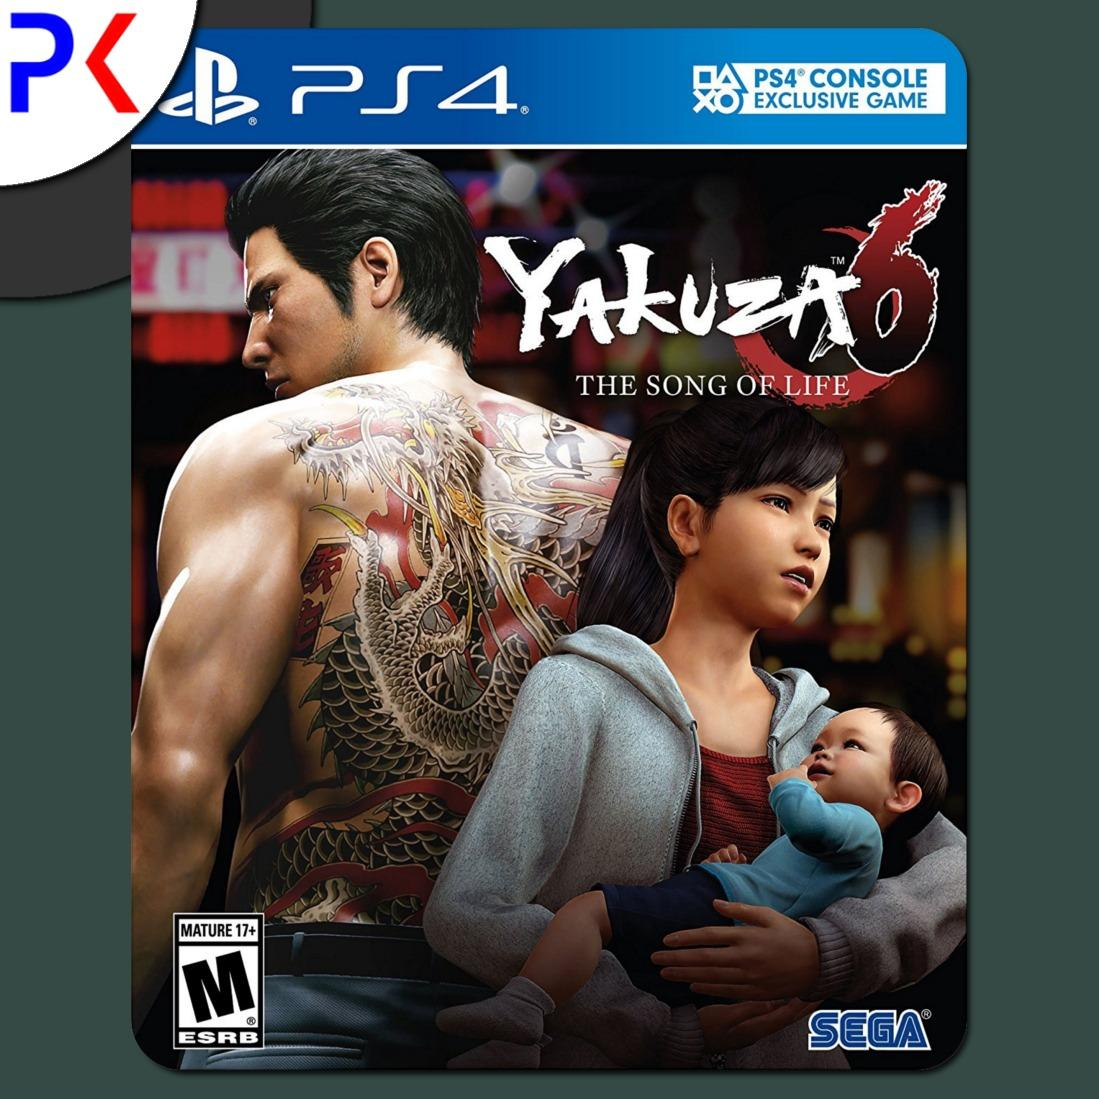 Buy Ps4 Yakuza 6 The Song Of Life Launch Edition R3 Cheap Singapore